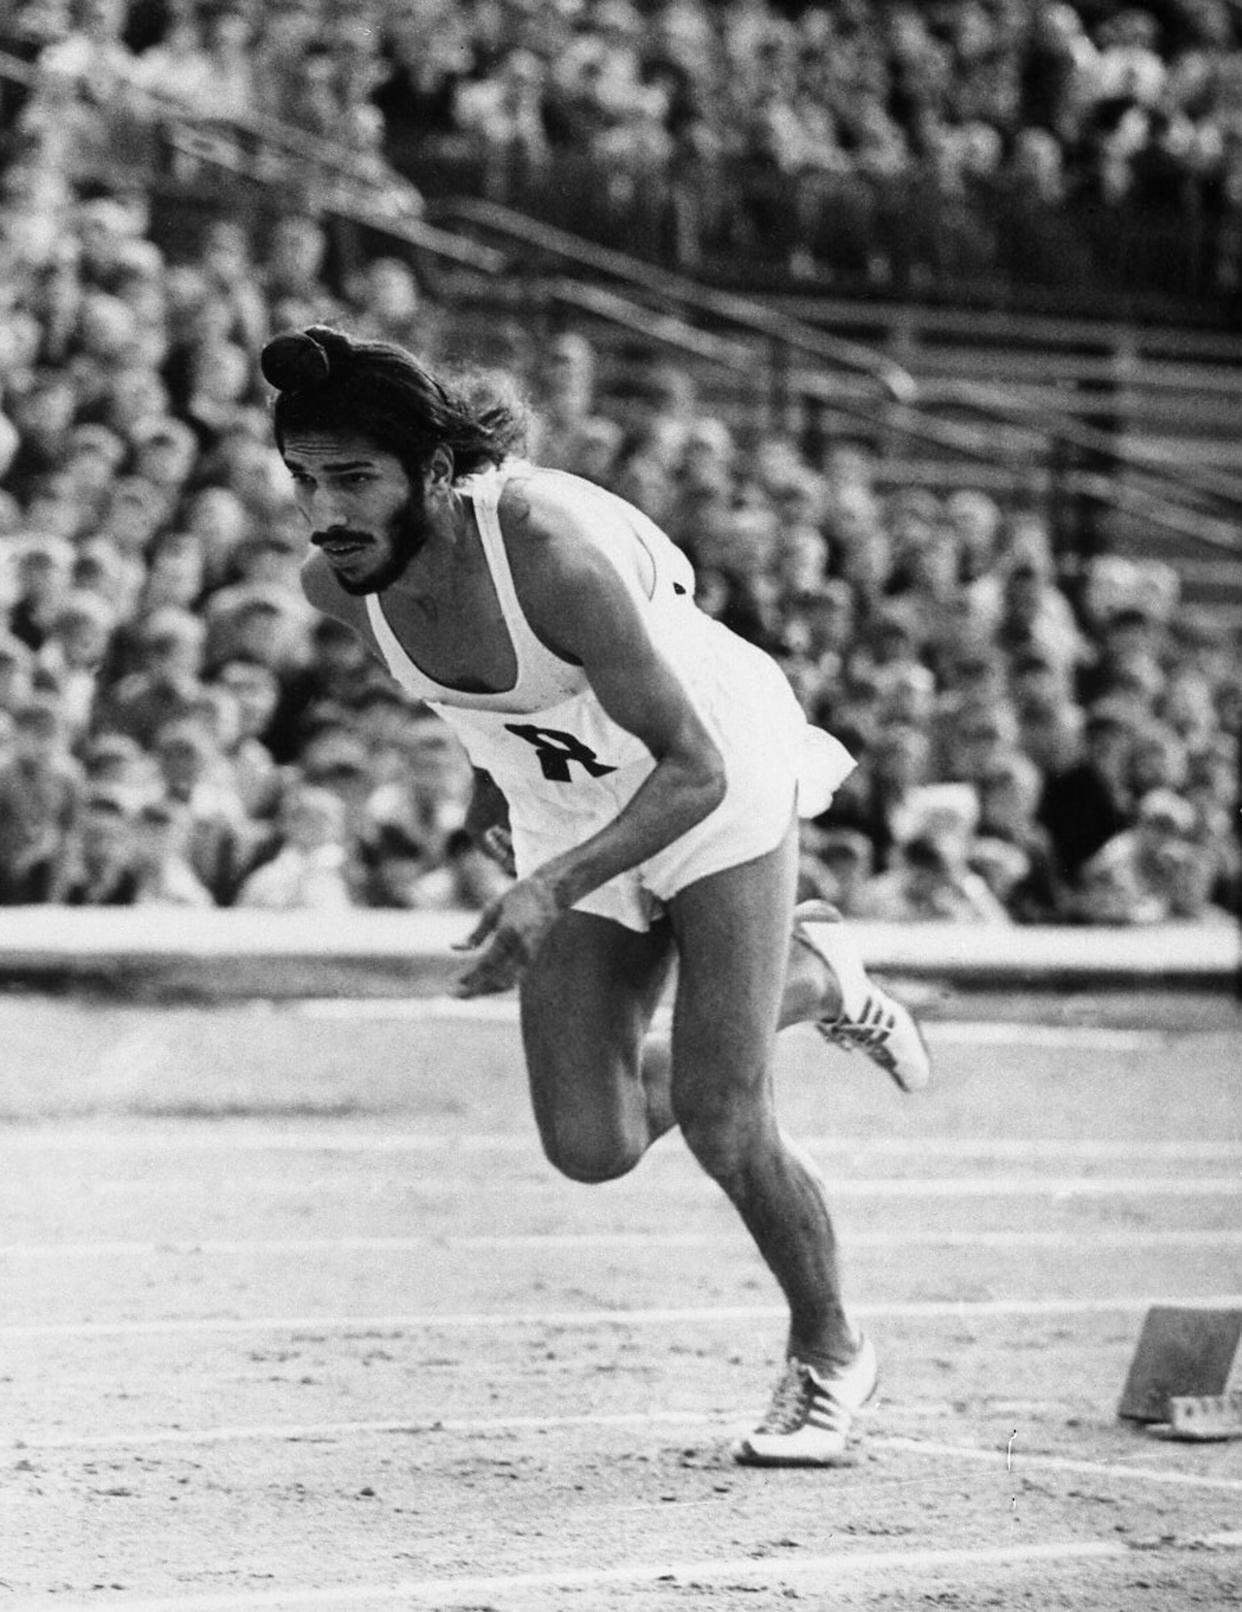 Milkha Singh, the famed Indian middle-distance runner starts the 400 metres race in the Janusz Kusocinski Memorial Track and Field MeetinG, in Warsaw, Poland, on June 20, 1961. (AP Photo)